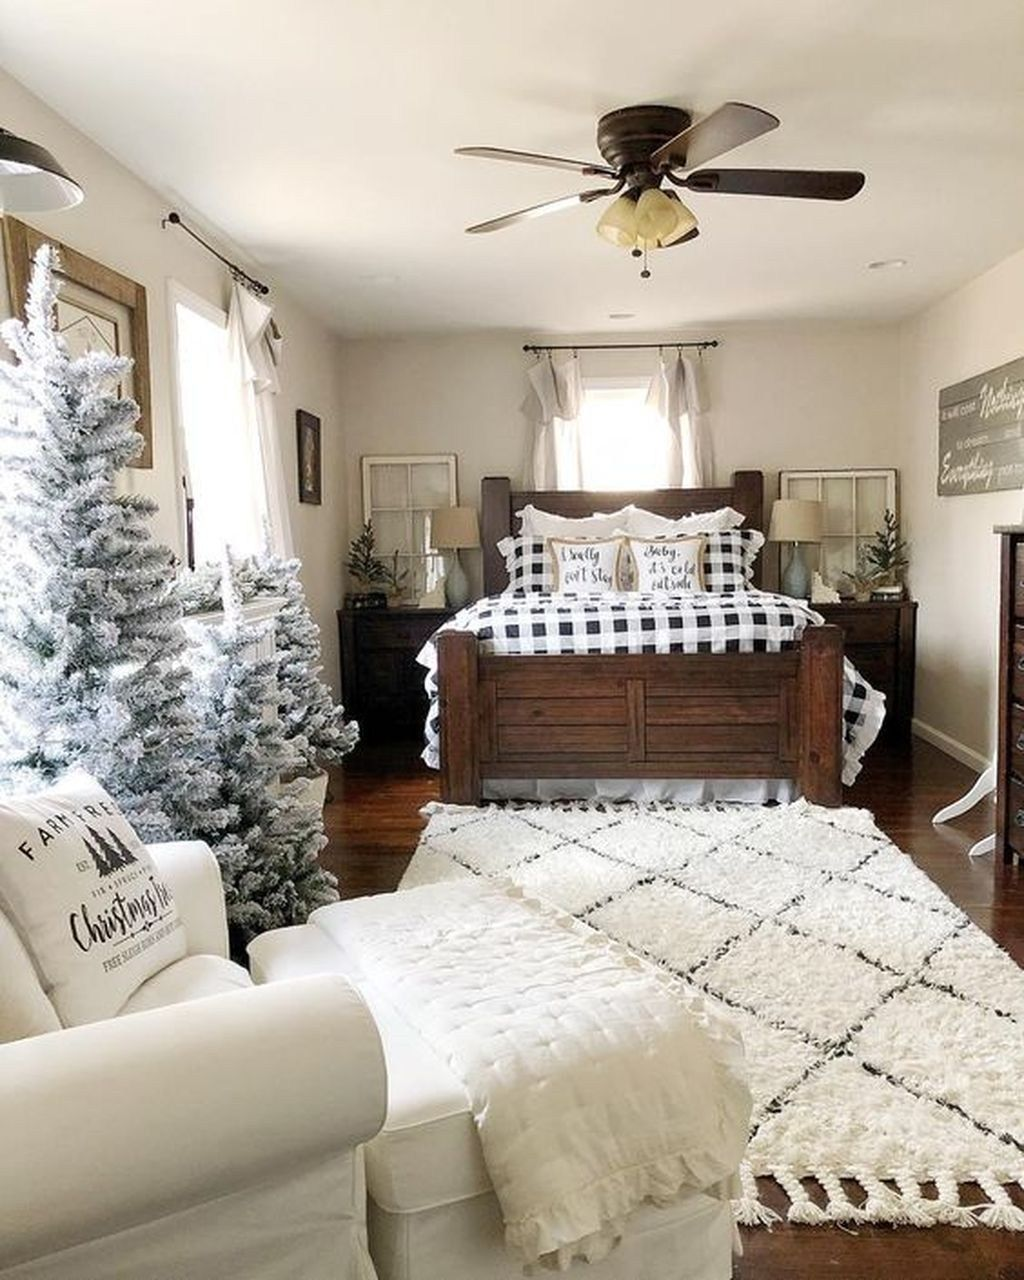 Amazing winter home decoration ideas also living room decor for my housey   in rh pinterest